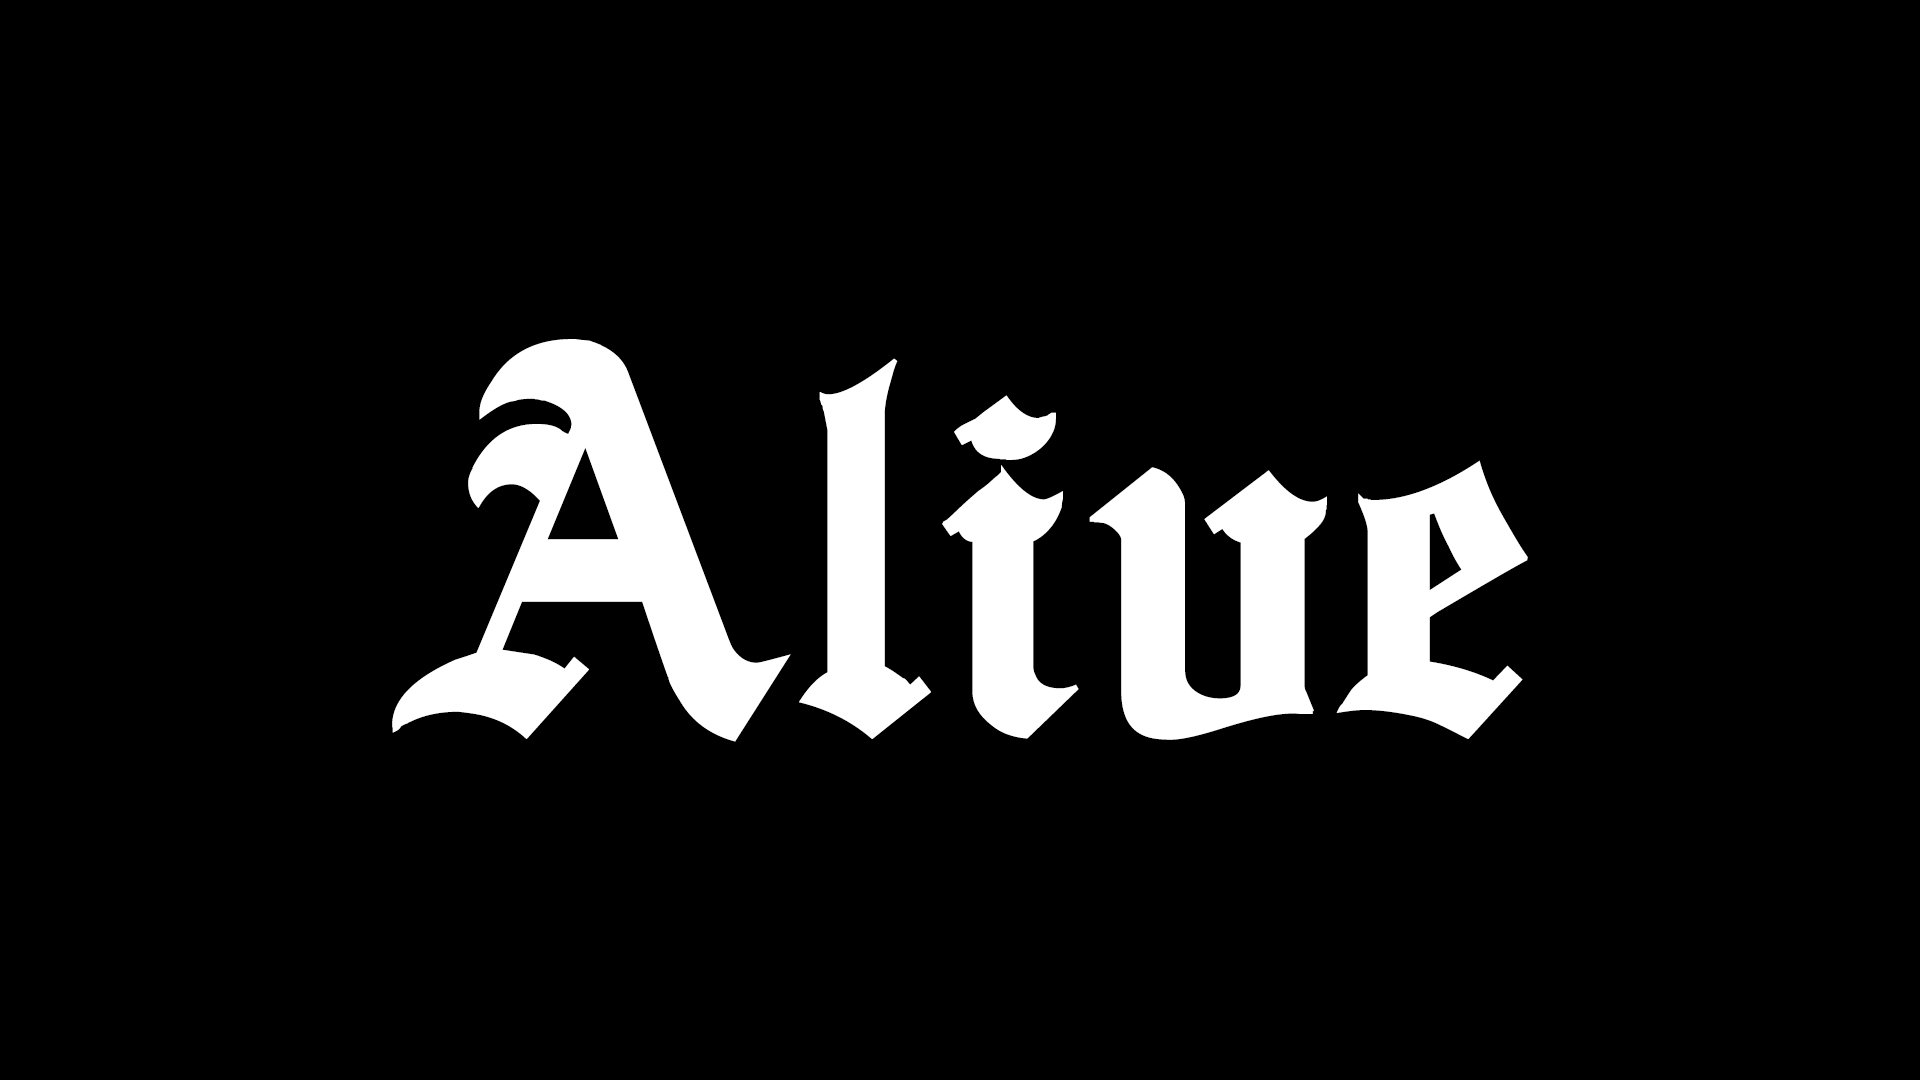 Alive Wallpaper Add Comment Download For Computer 1920x1080